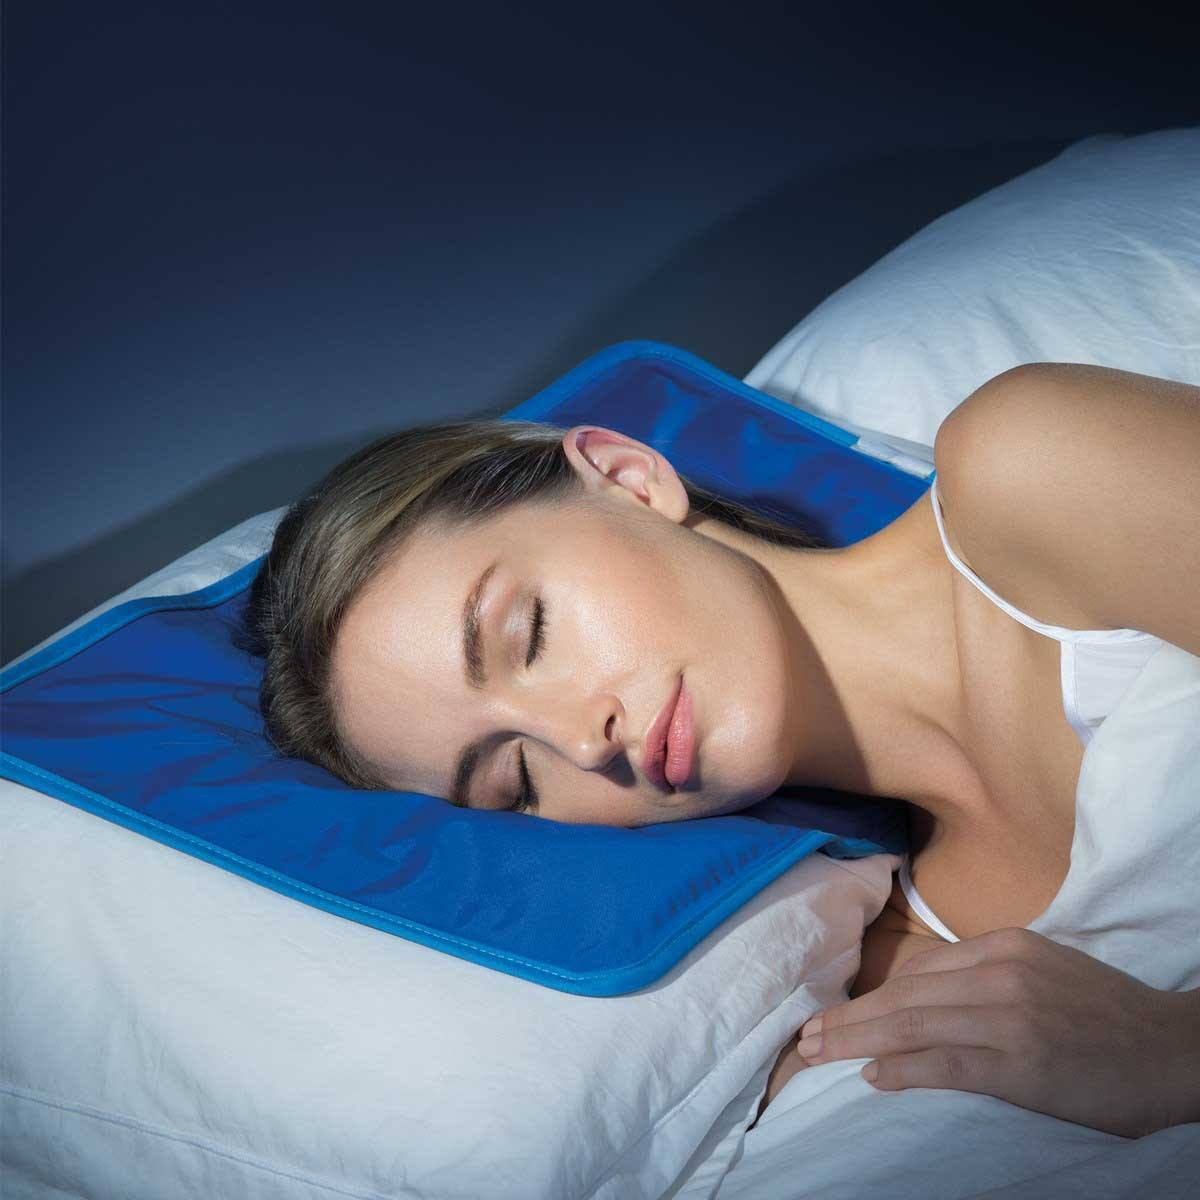 B&M Selling £5 Pillow That Keeps You Cool In Summer